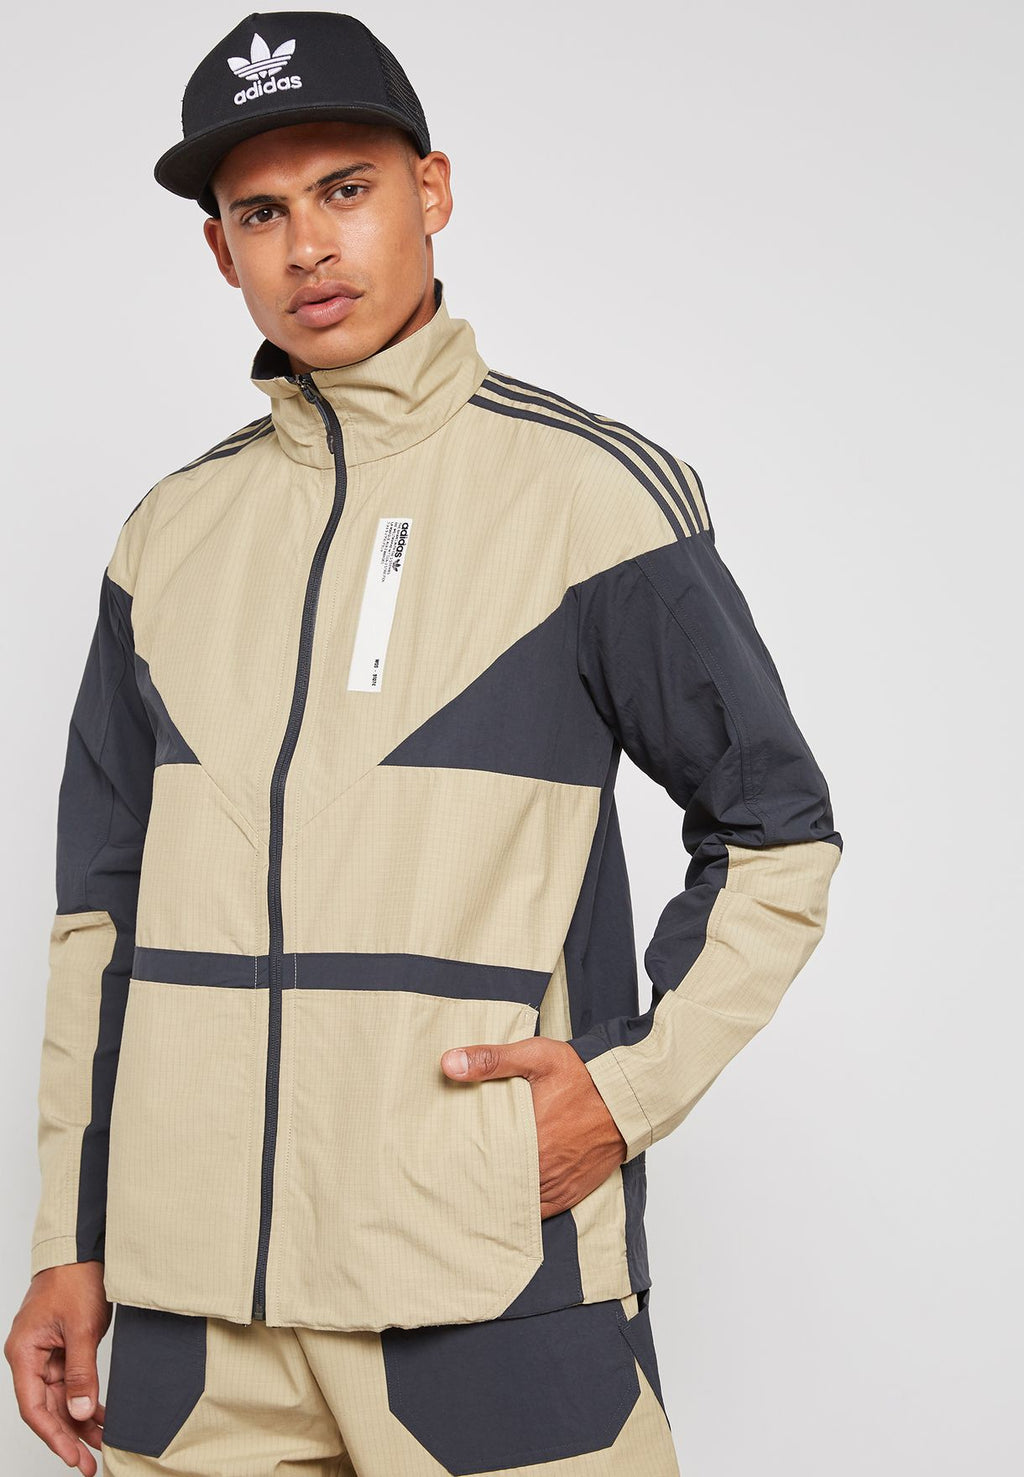 adidas Originals NMD Track Jacket XL – Brands24